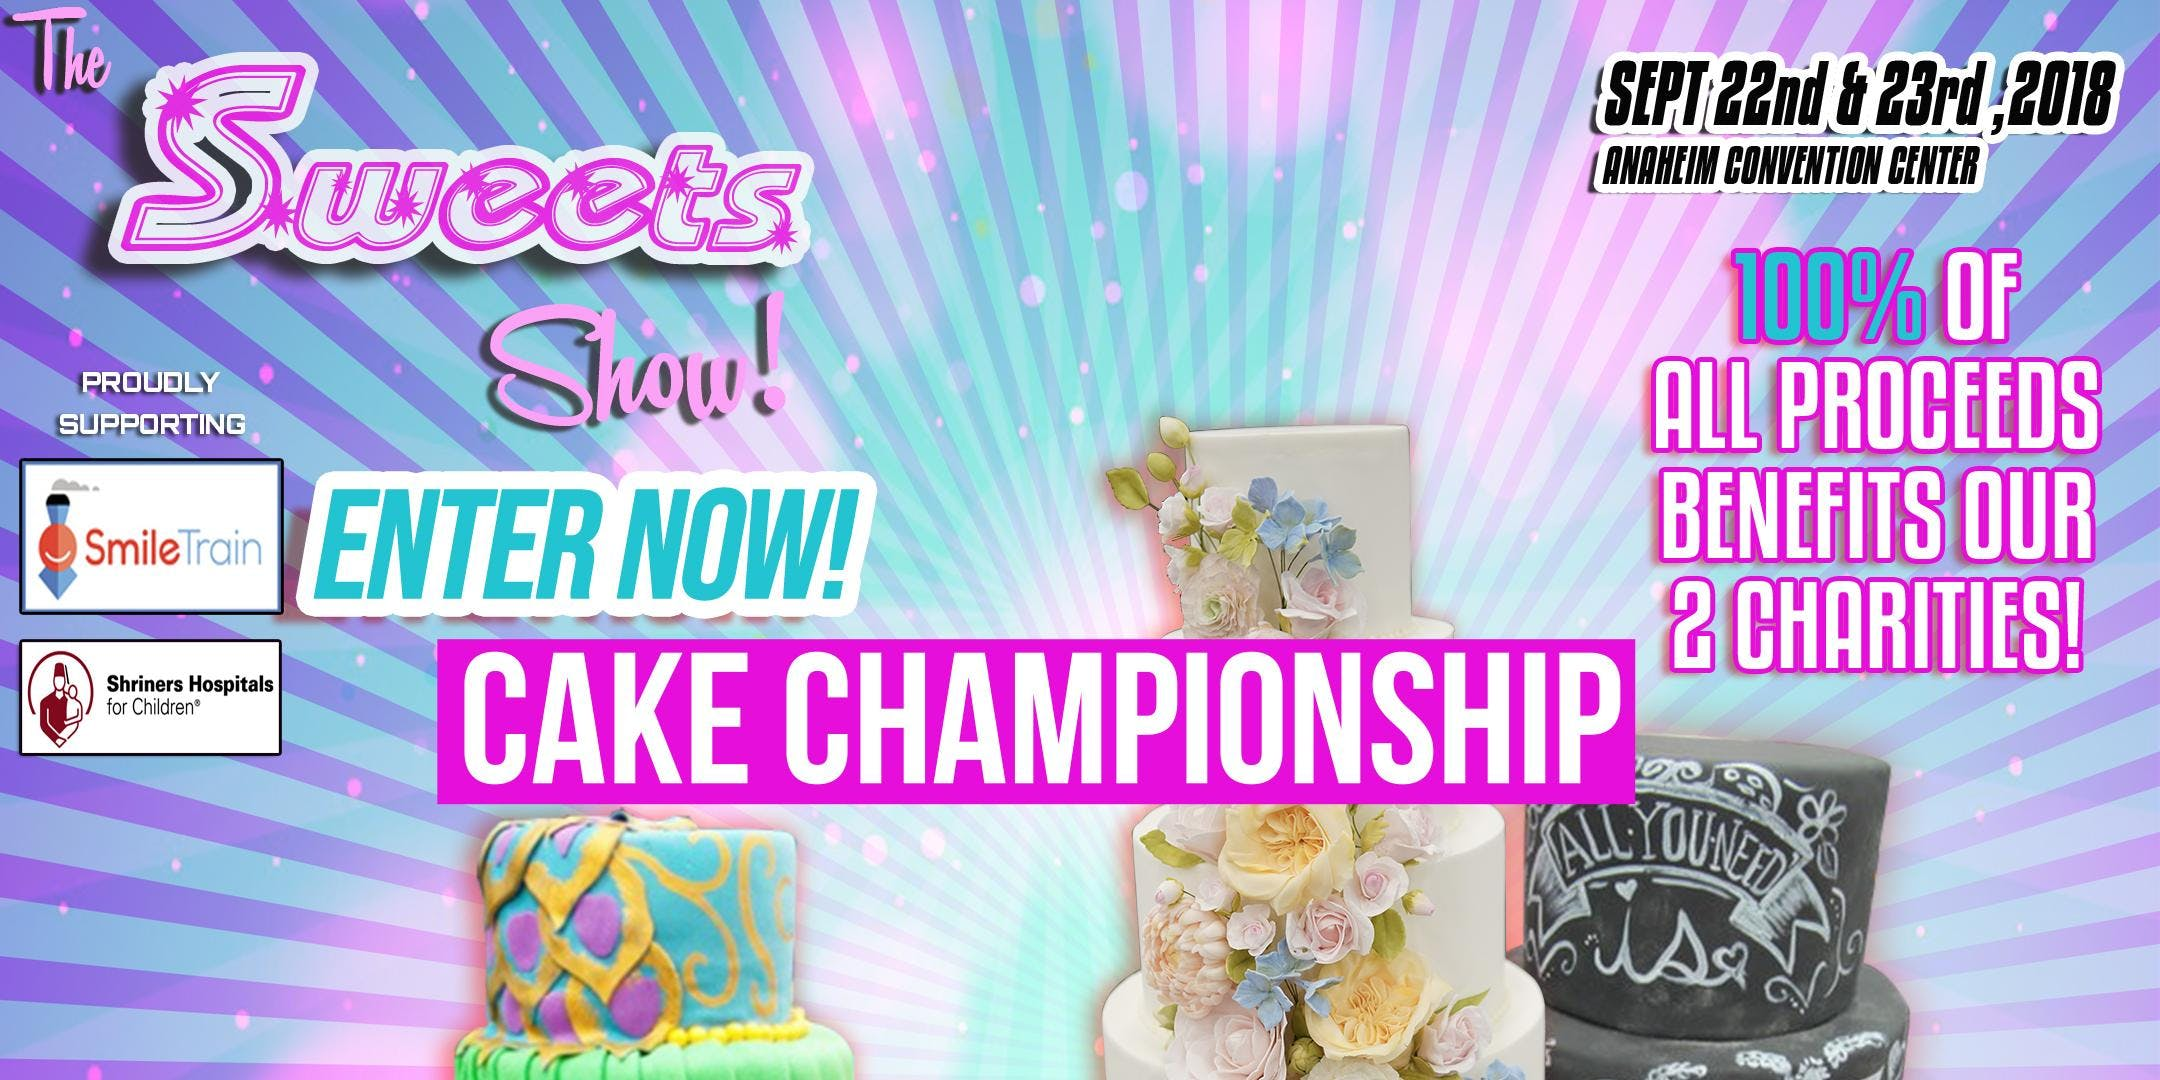 The Sweets Show Cake Championship Competition